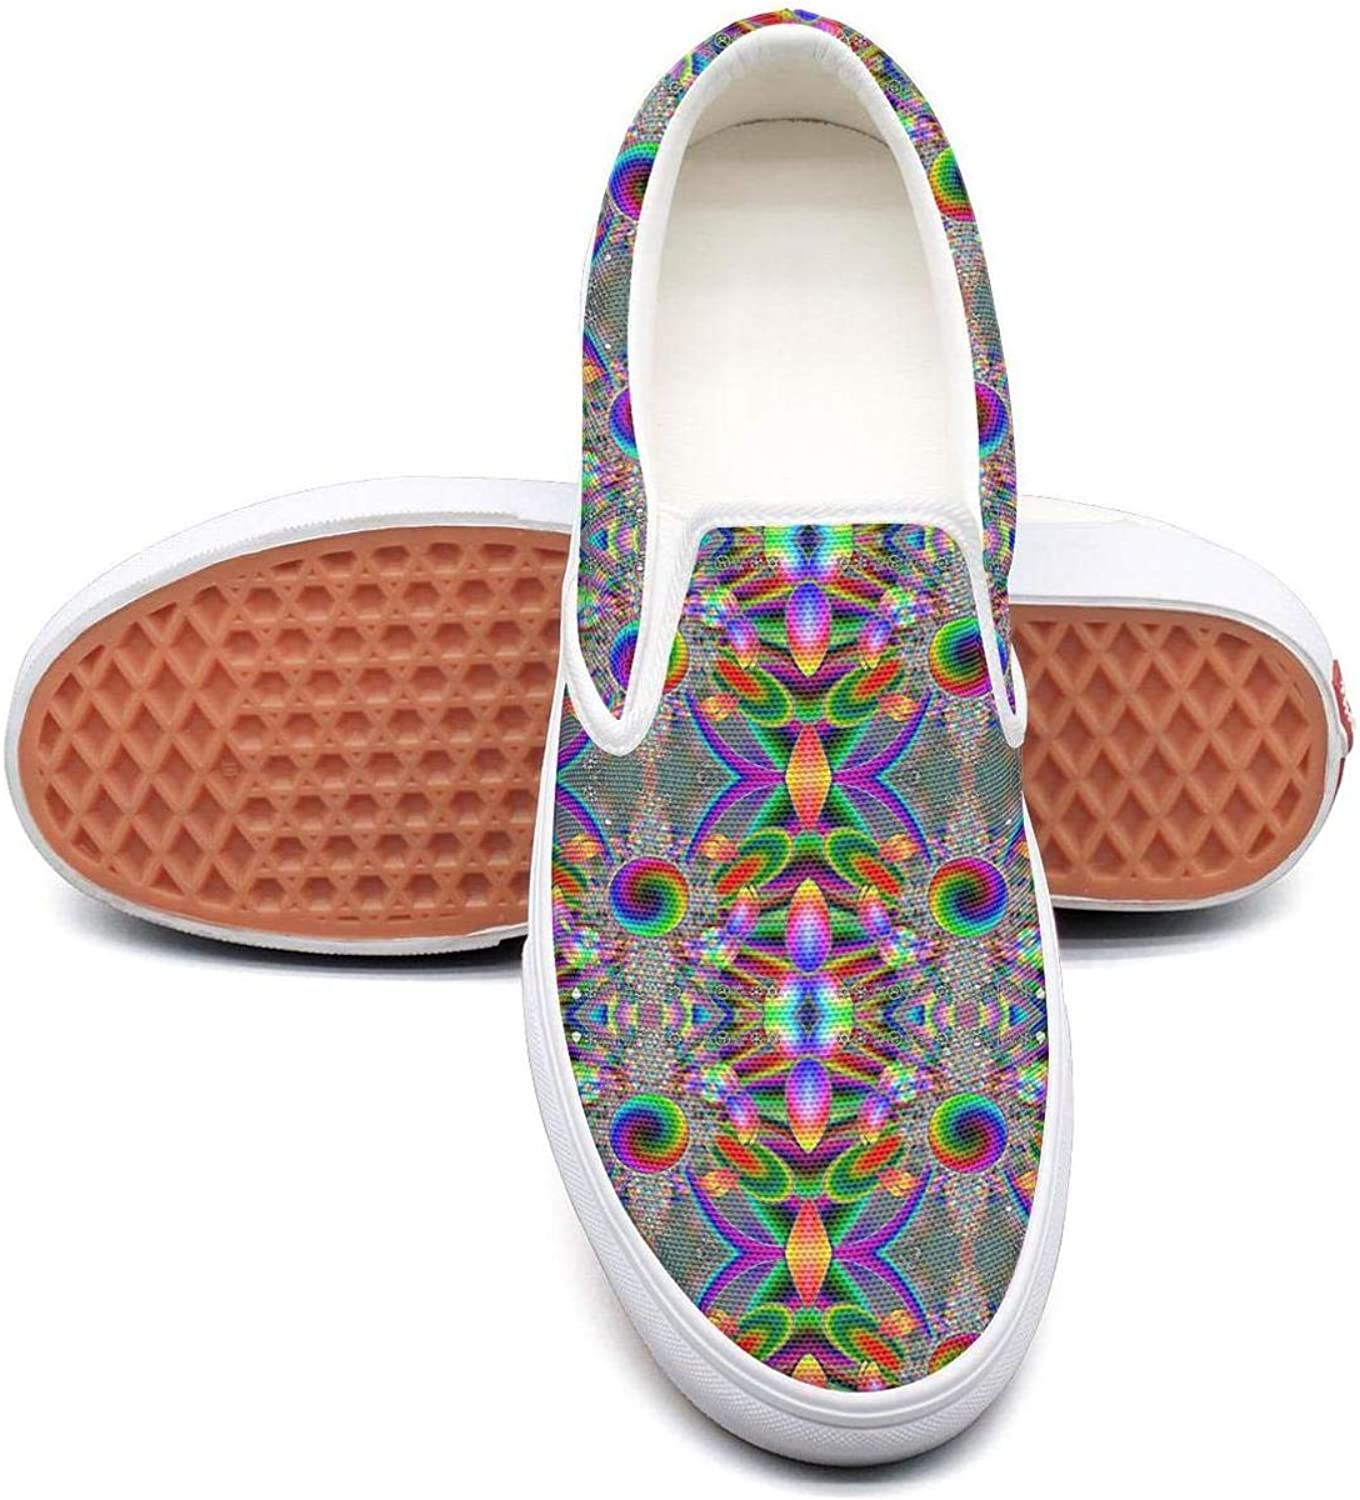 VXCVF Bohemian Flower Psychedelic Segmentation Womens Canvas shoes Loafers shoefor Womens